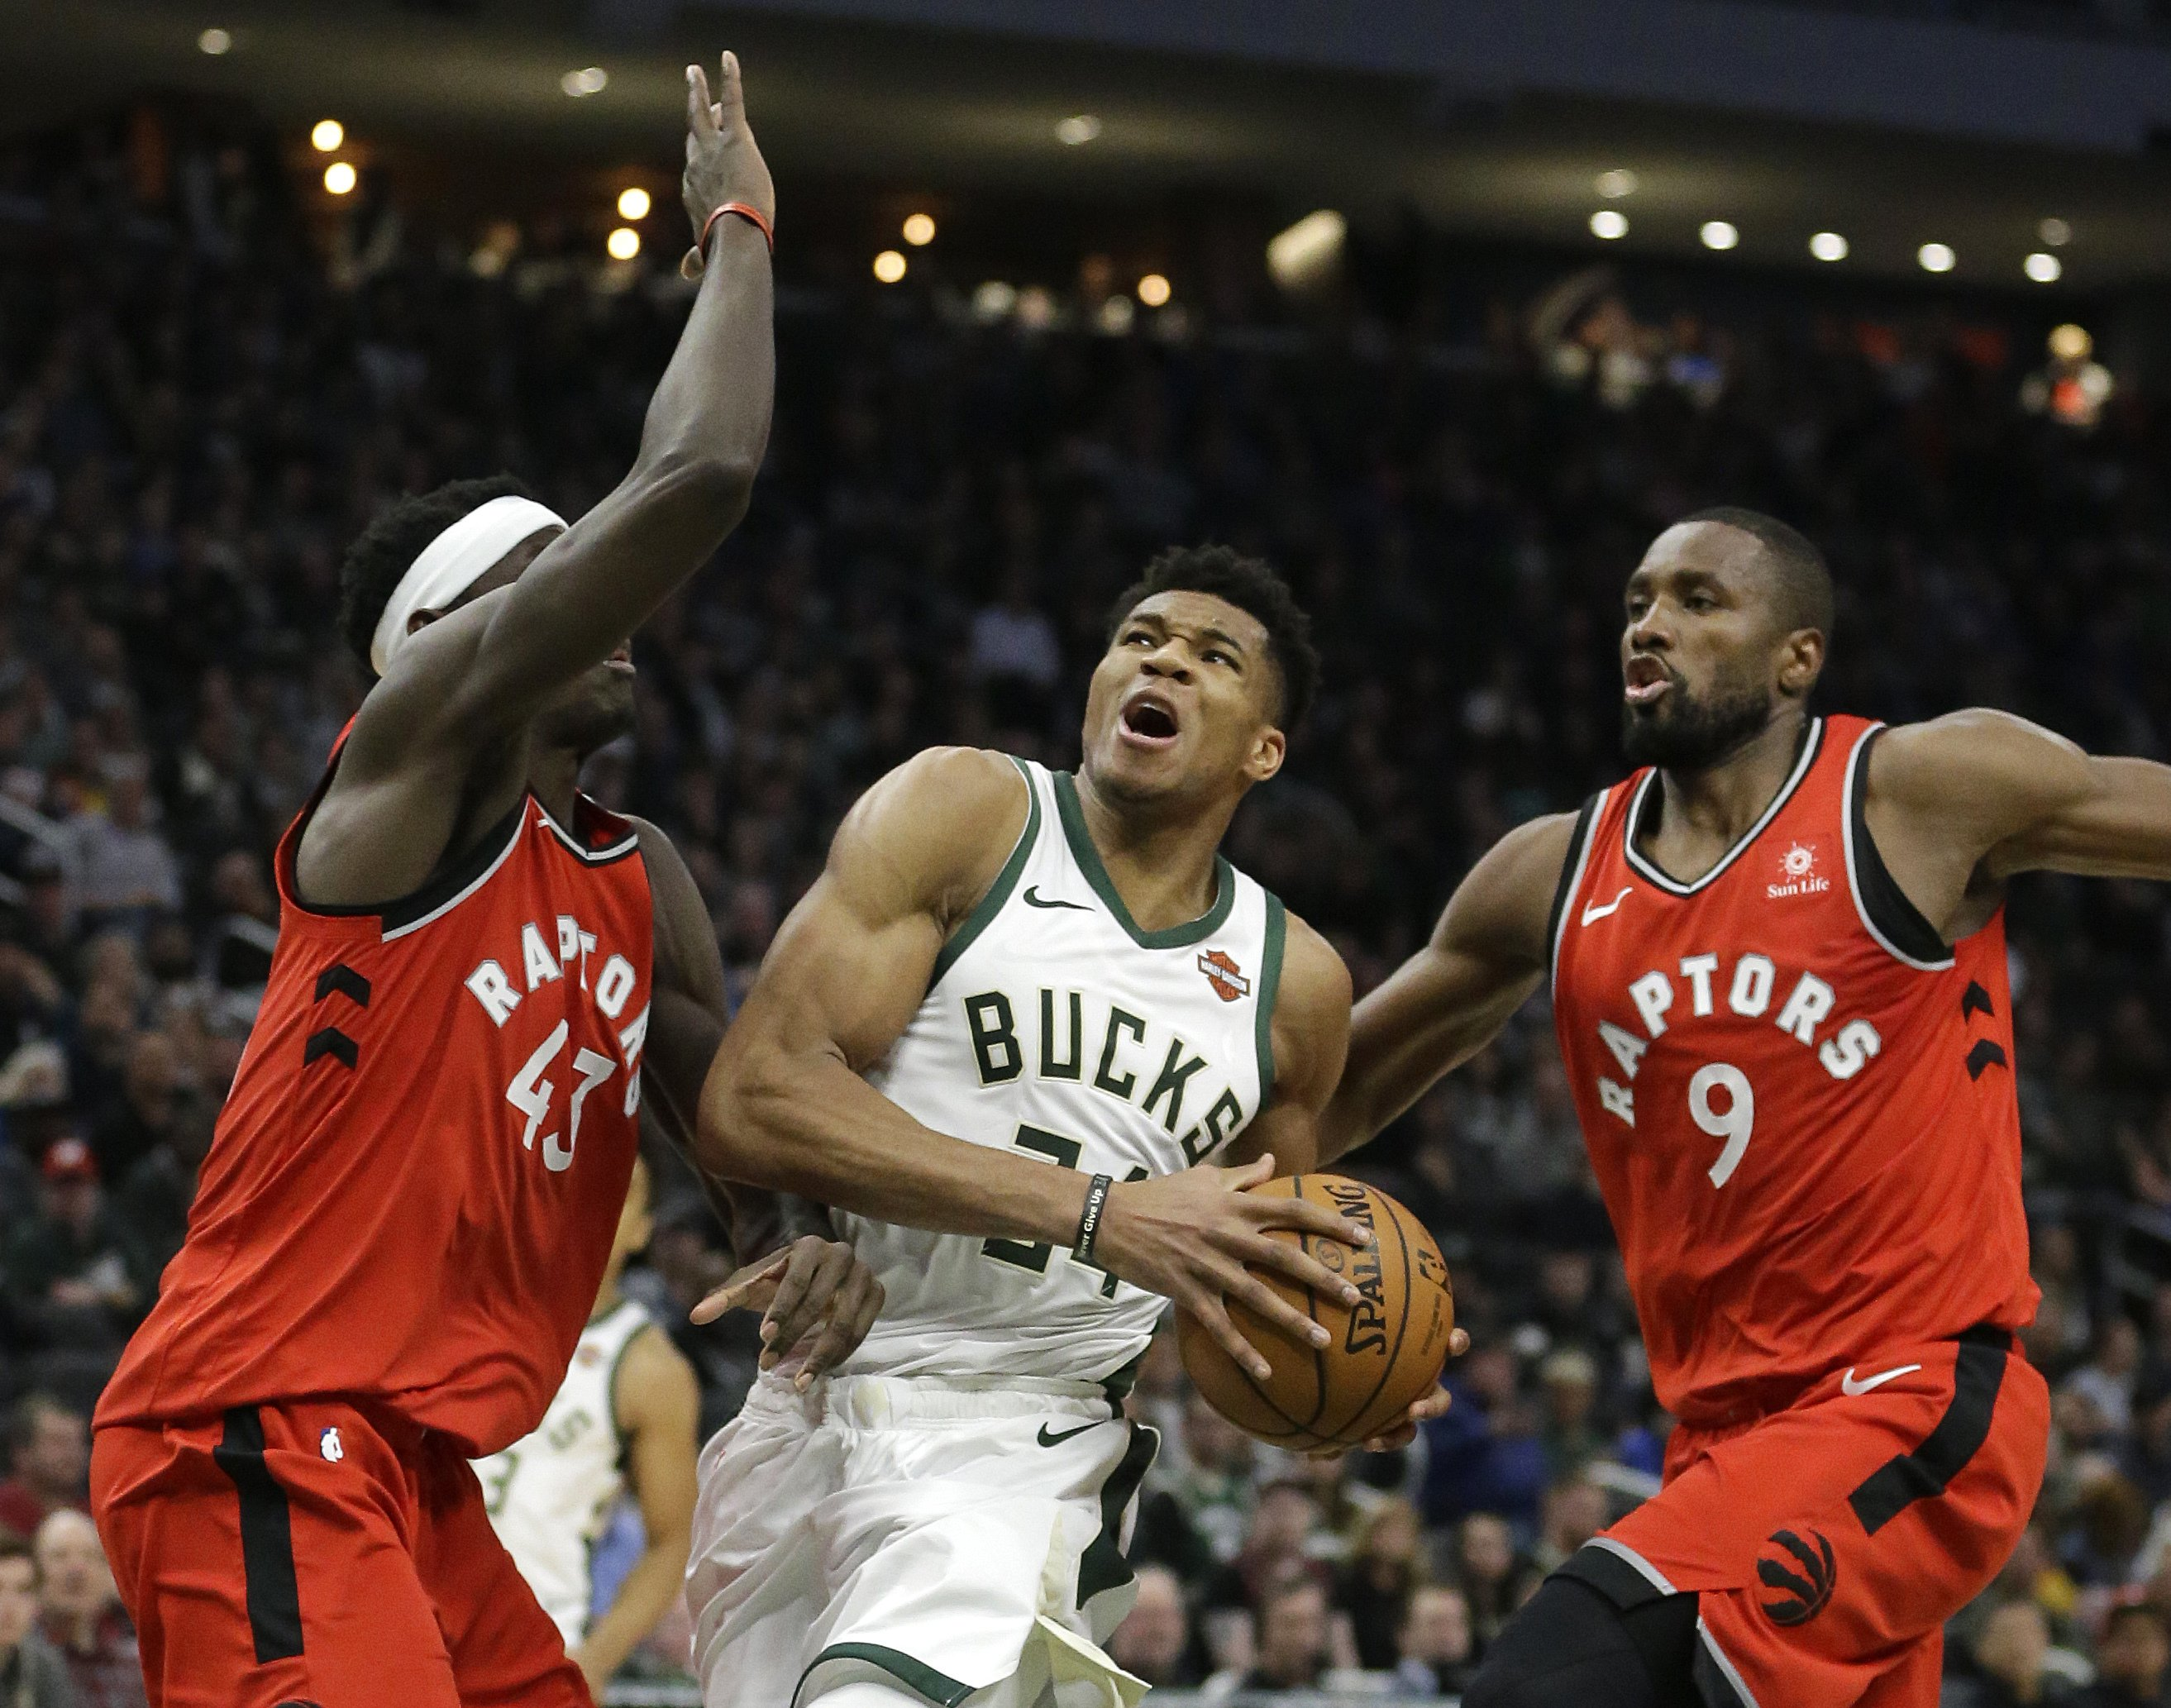 Leonard, Siakam each score 30 points, Raptors beat Bucks